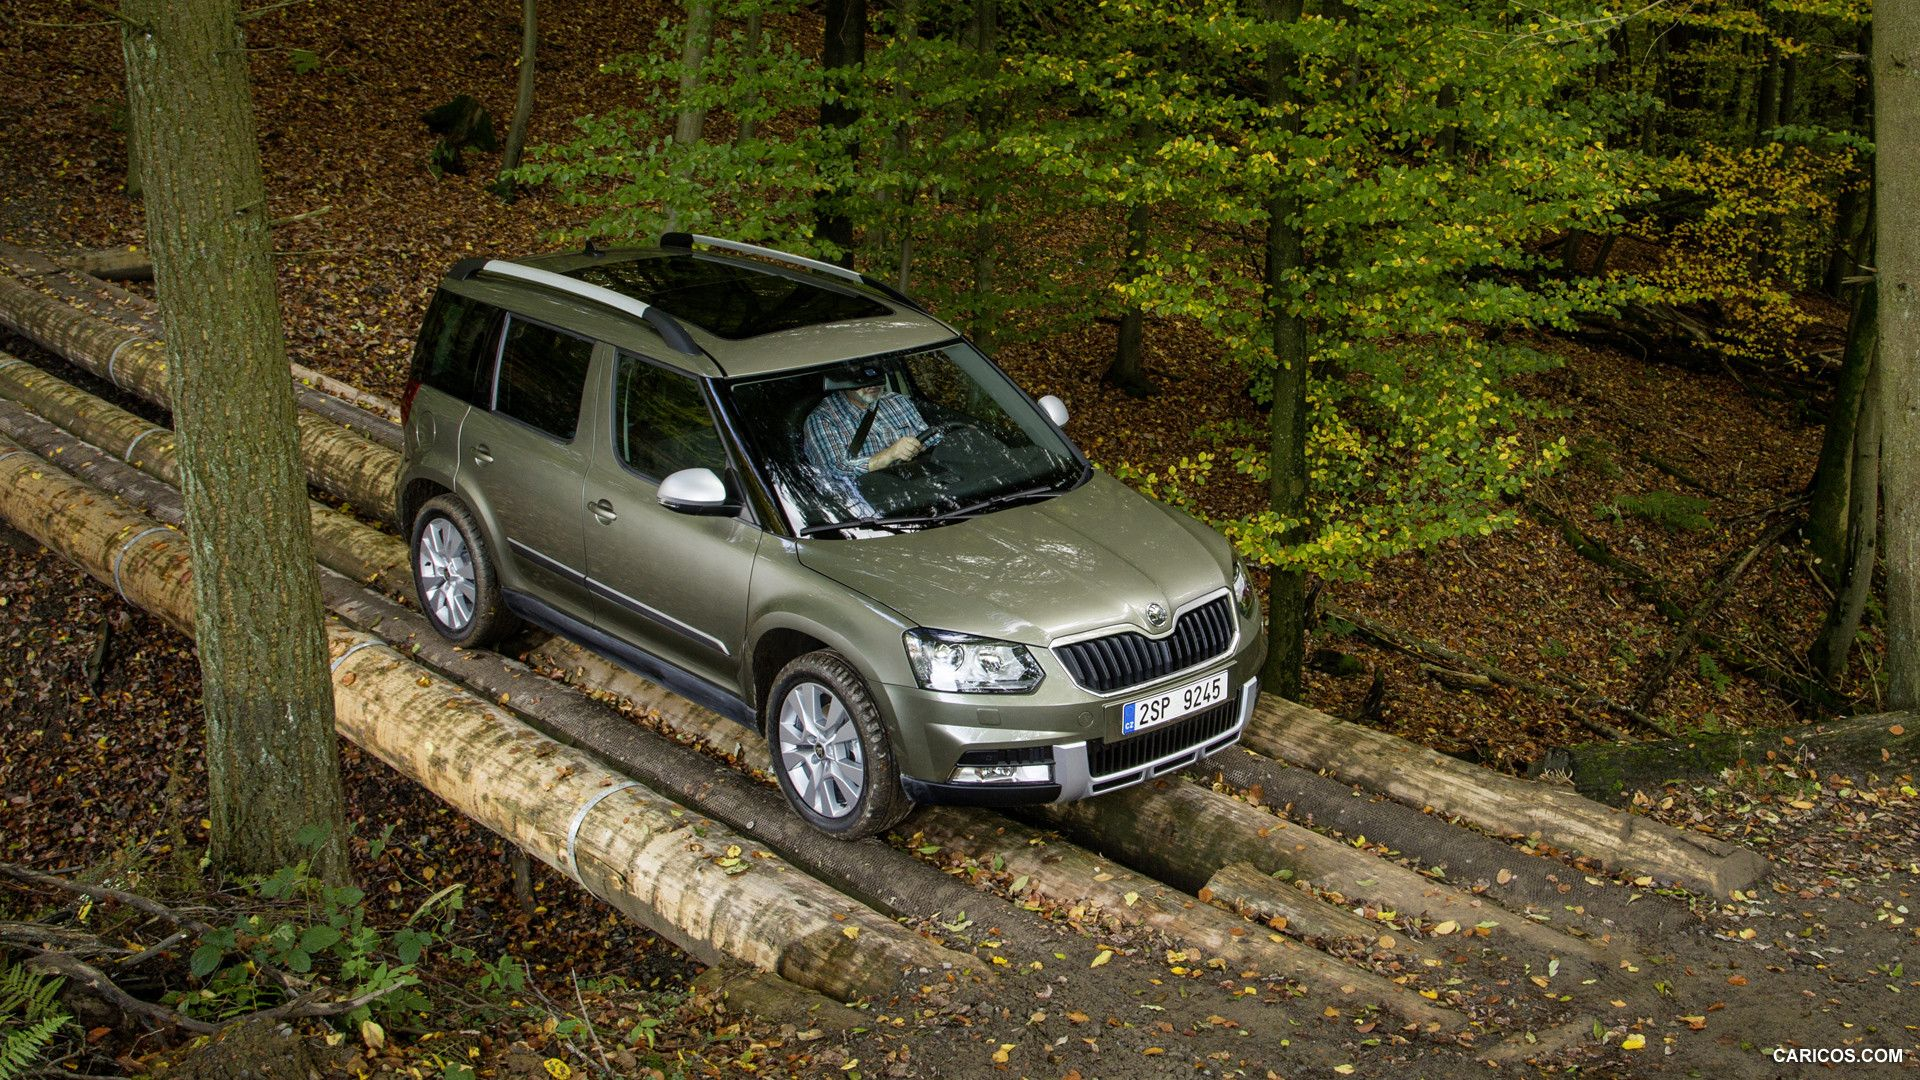 2014 Skoda Yeti Wallpaper Voiture